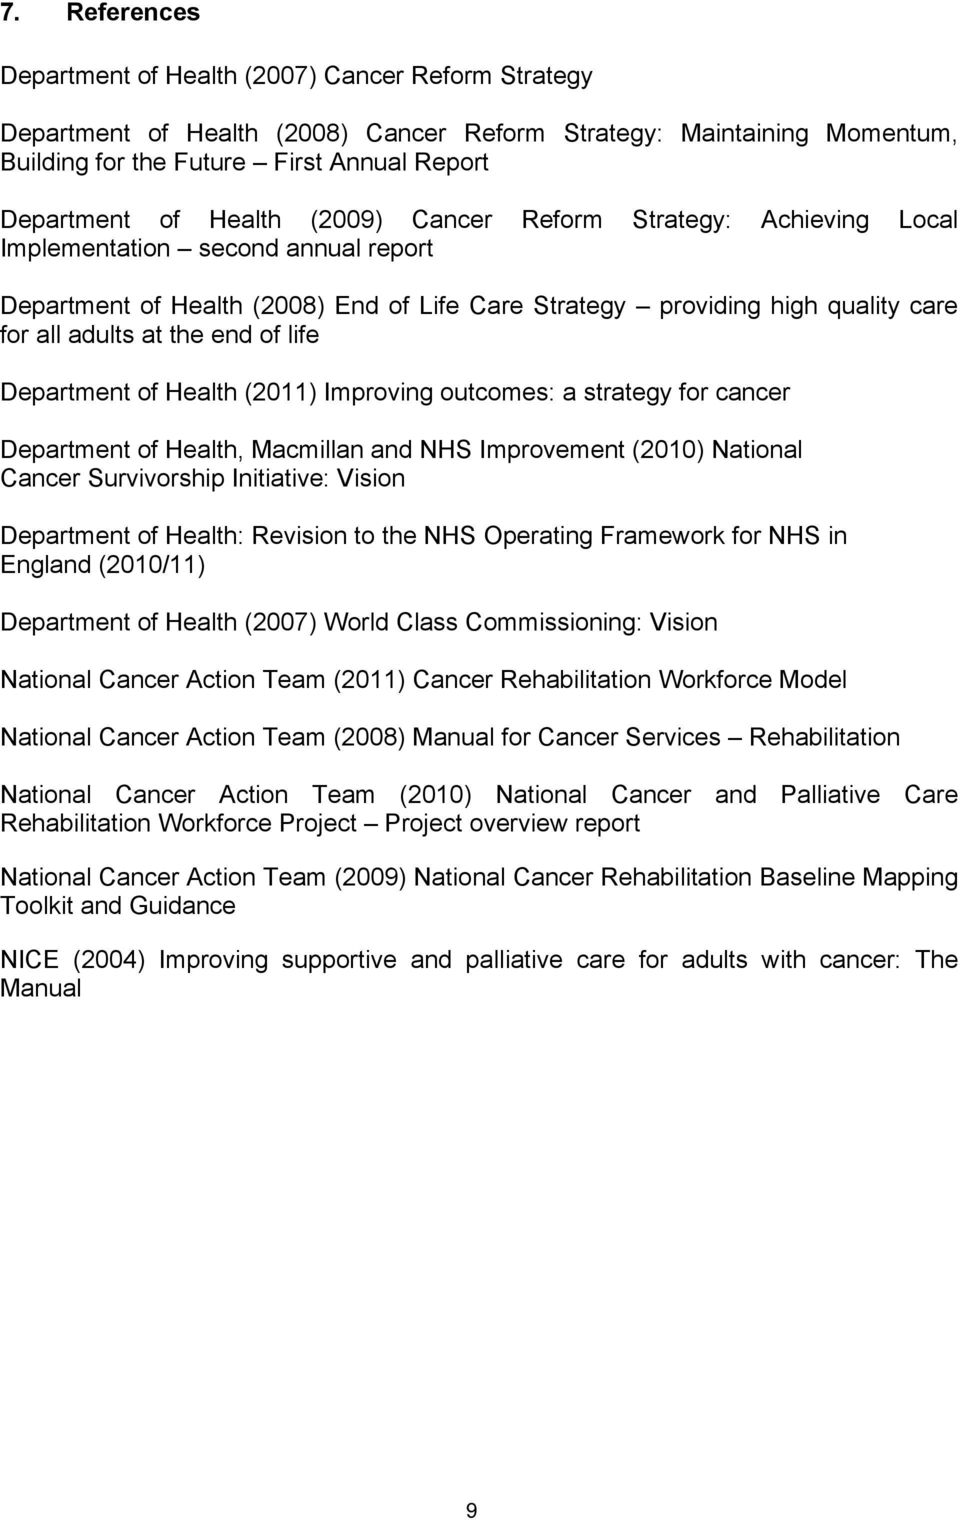 of life Department of Health (2011) Improving outcomes: a strategy for cancer Department of Health, Macmillan and NHS Improvement (2010) National Cancer Survivorship Initiative: Vision Department of